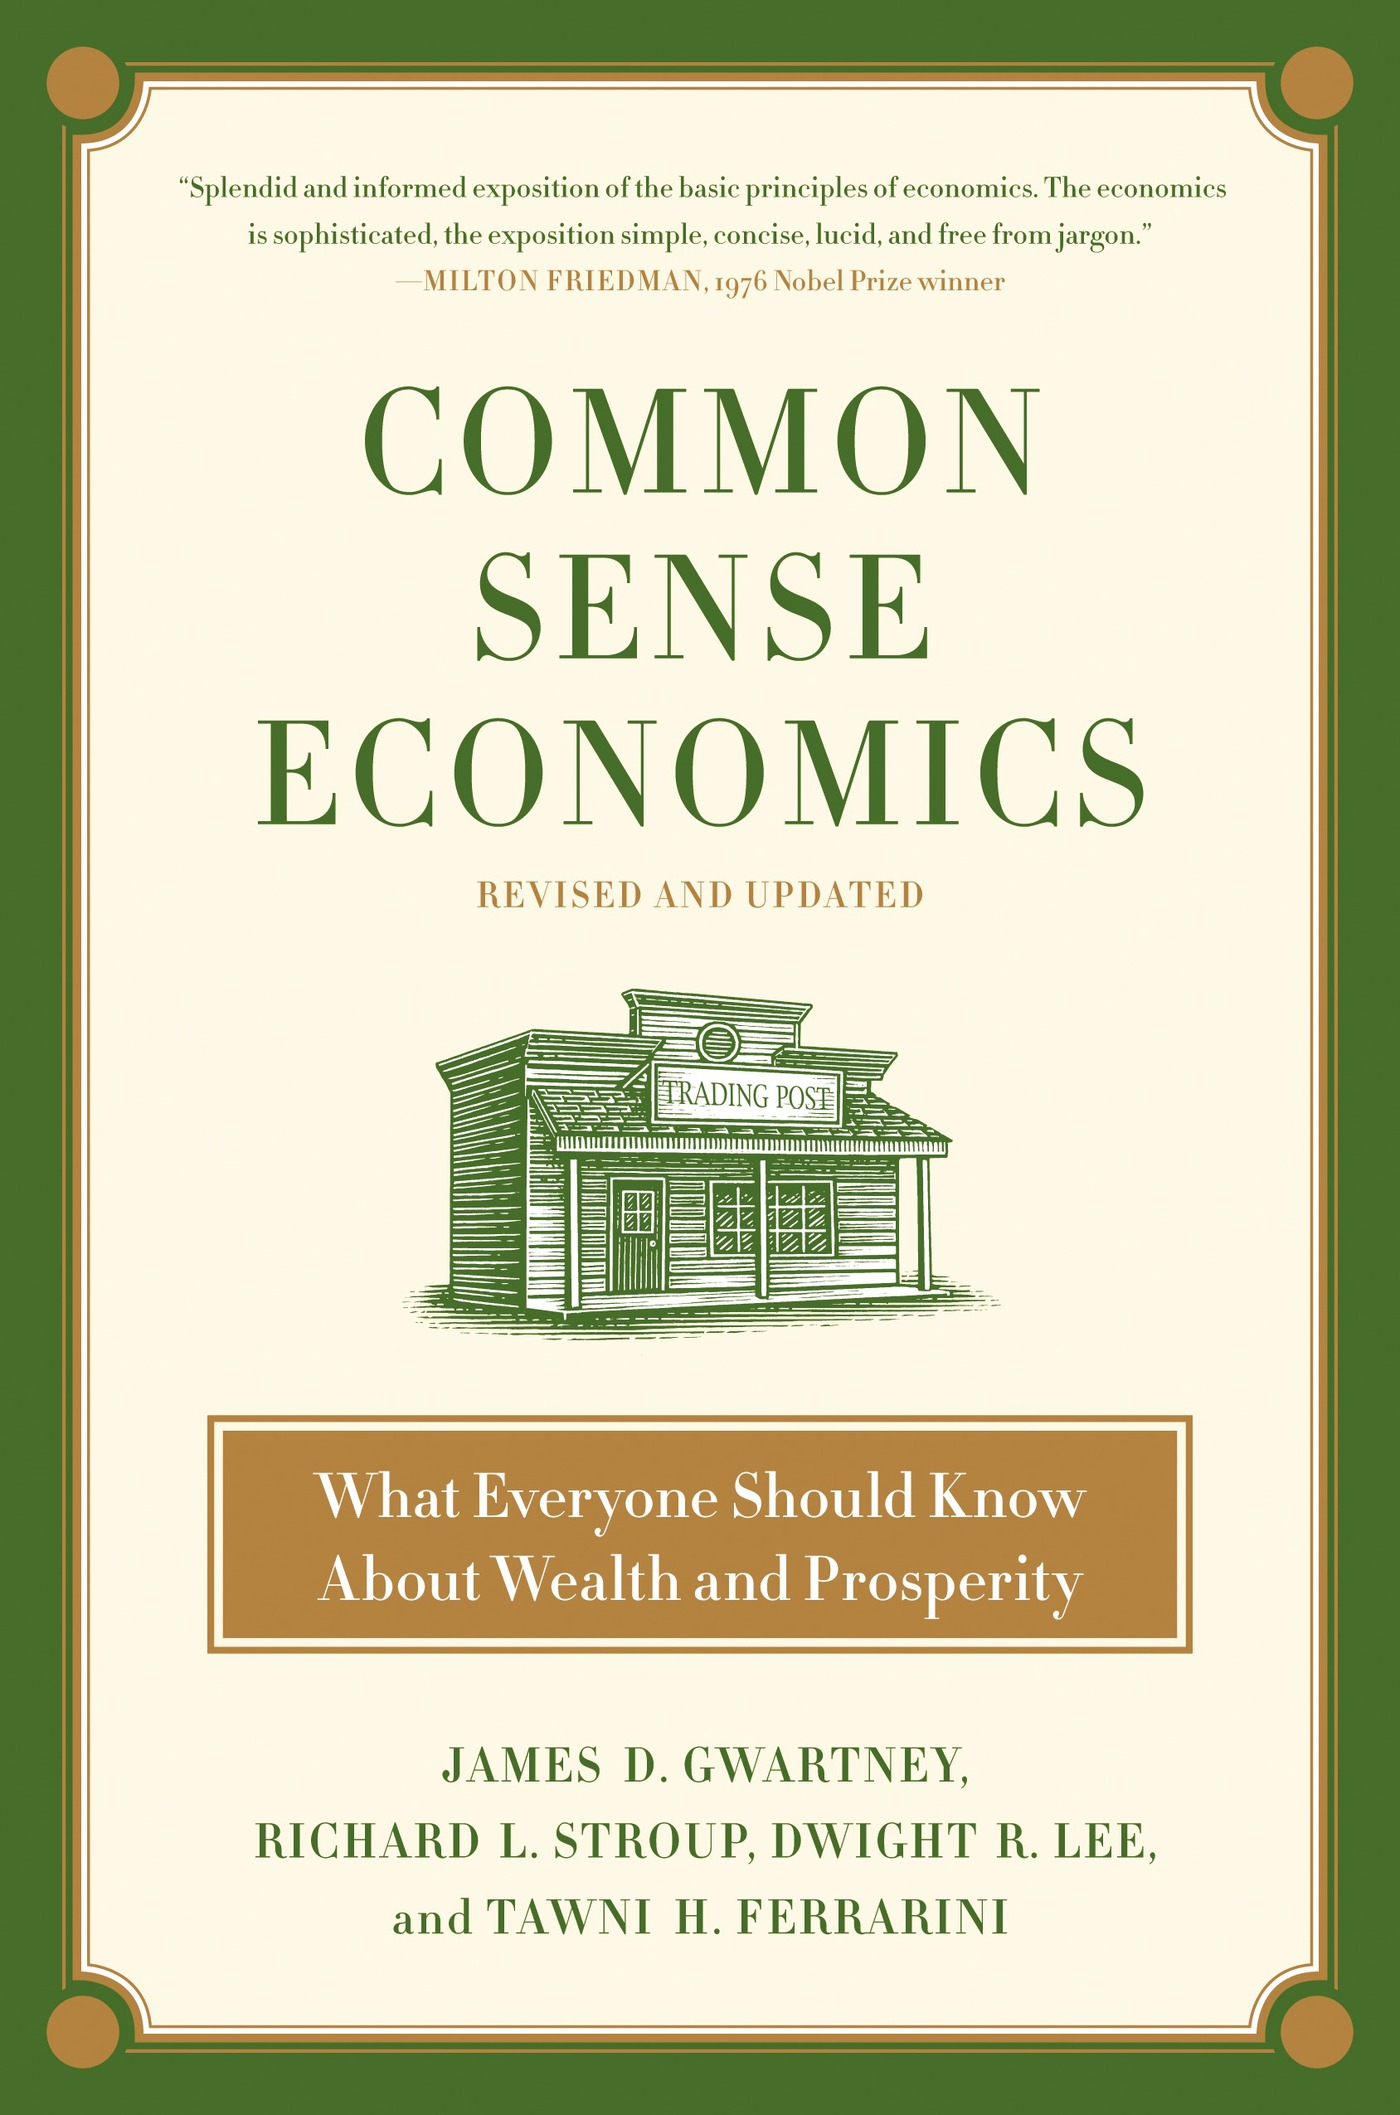 Common Sense Economics By: Dwight R. Lee,James D. Gwartney,Richard L. Stroup,Tawni Hunt Ferrarini